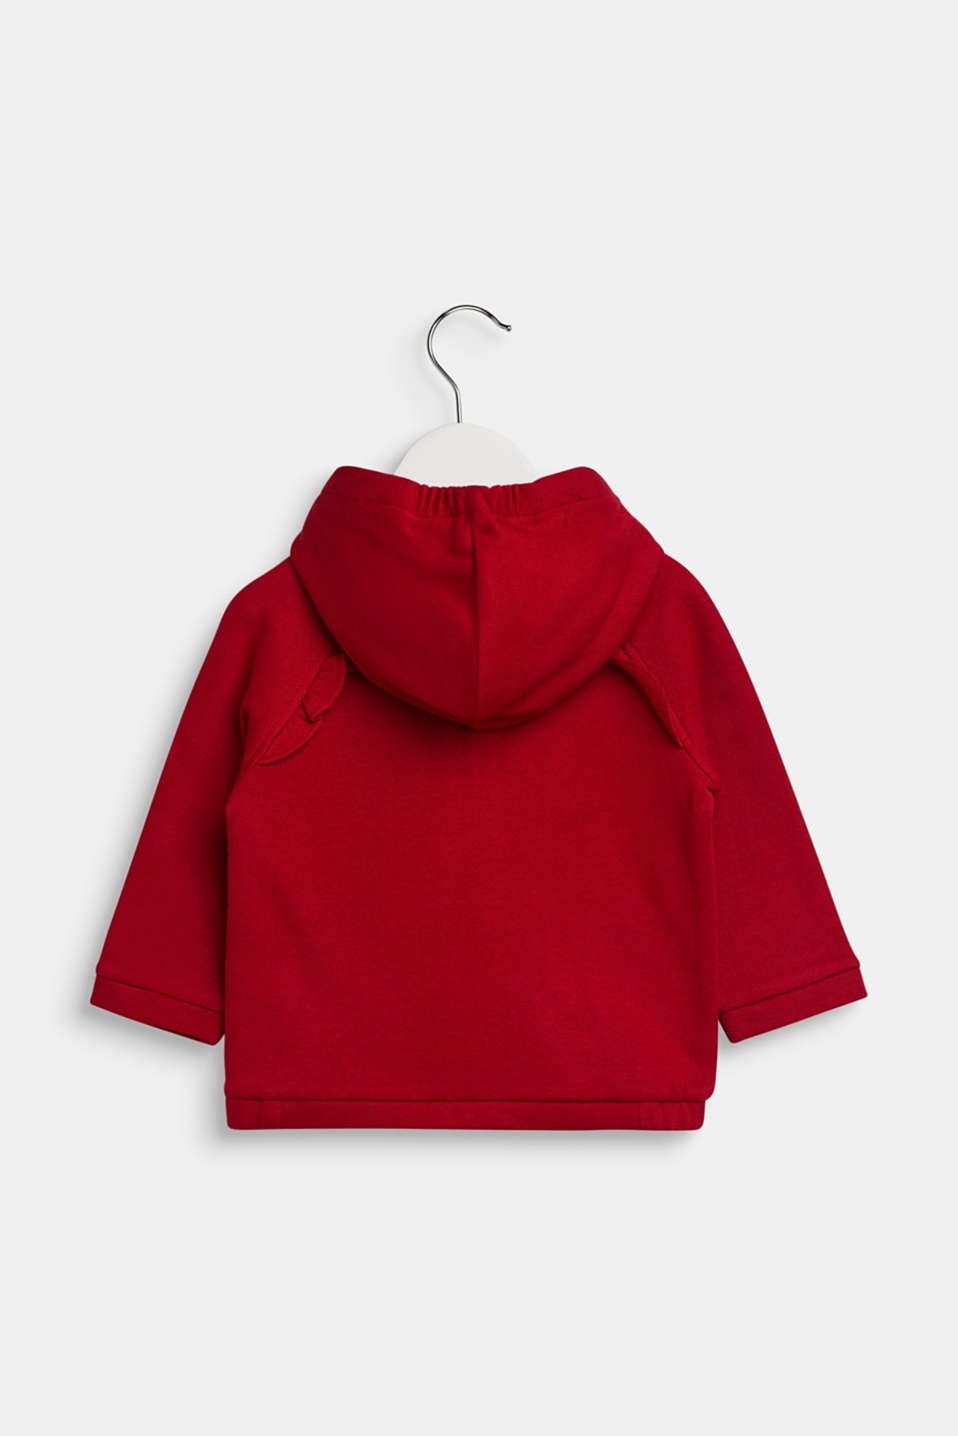 Sweatshirt cardigan in 100% cotton, LCTIBETAN RED, detail image number 1